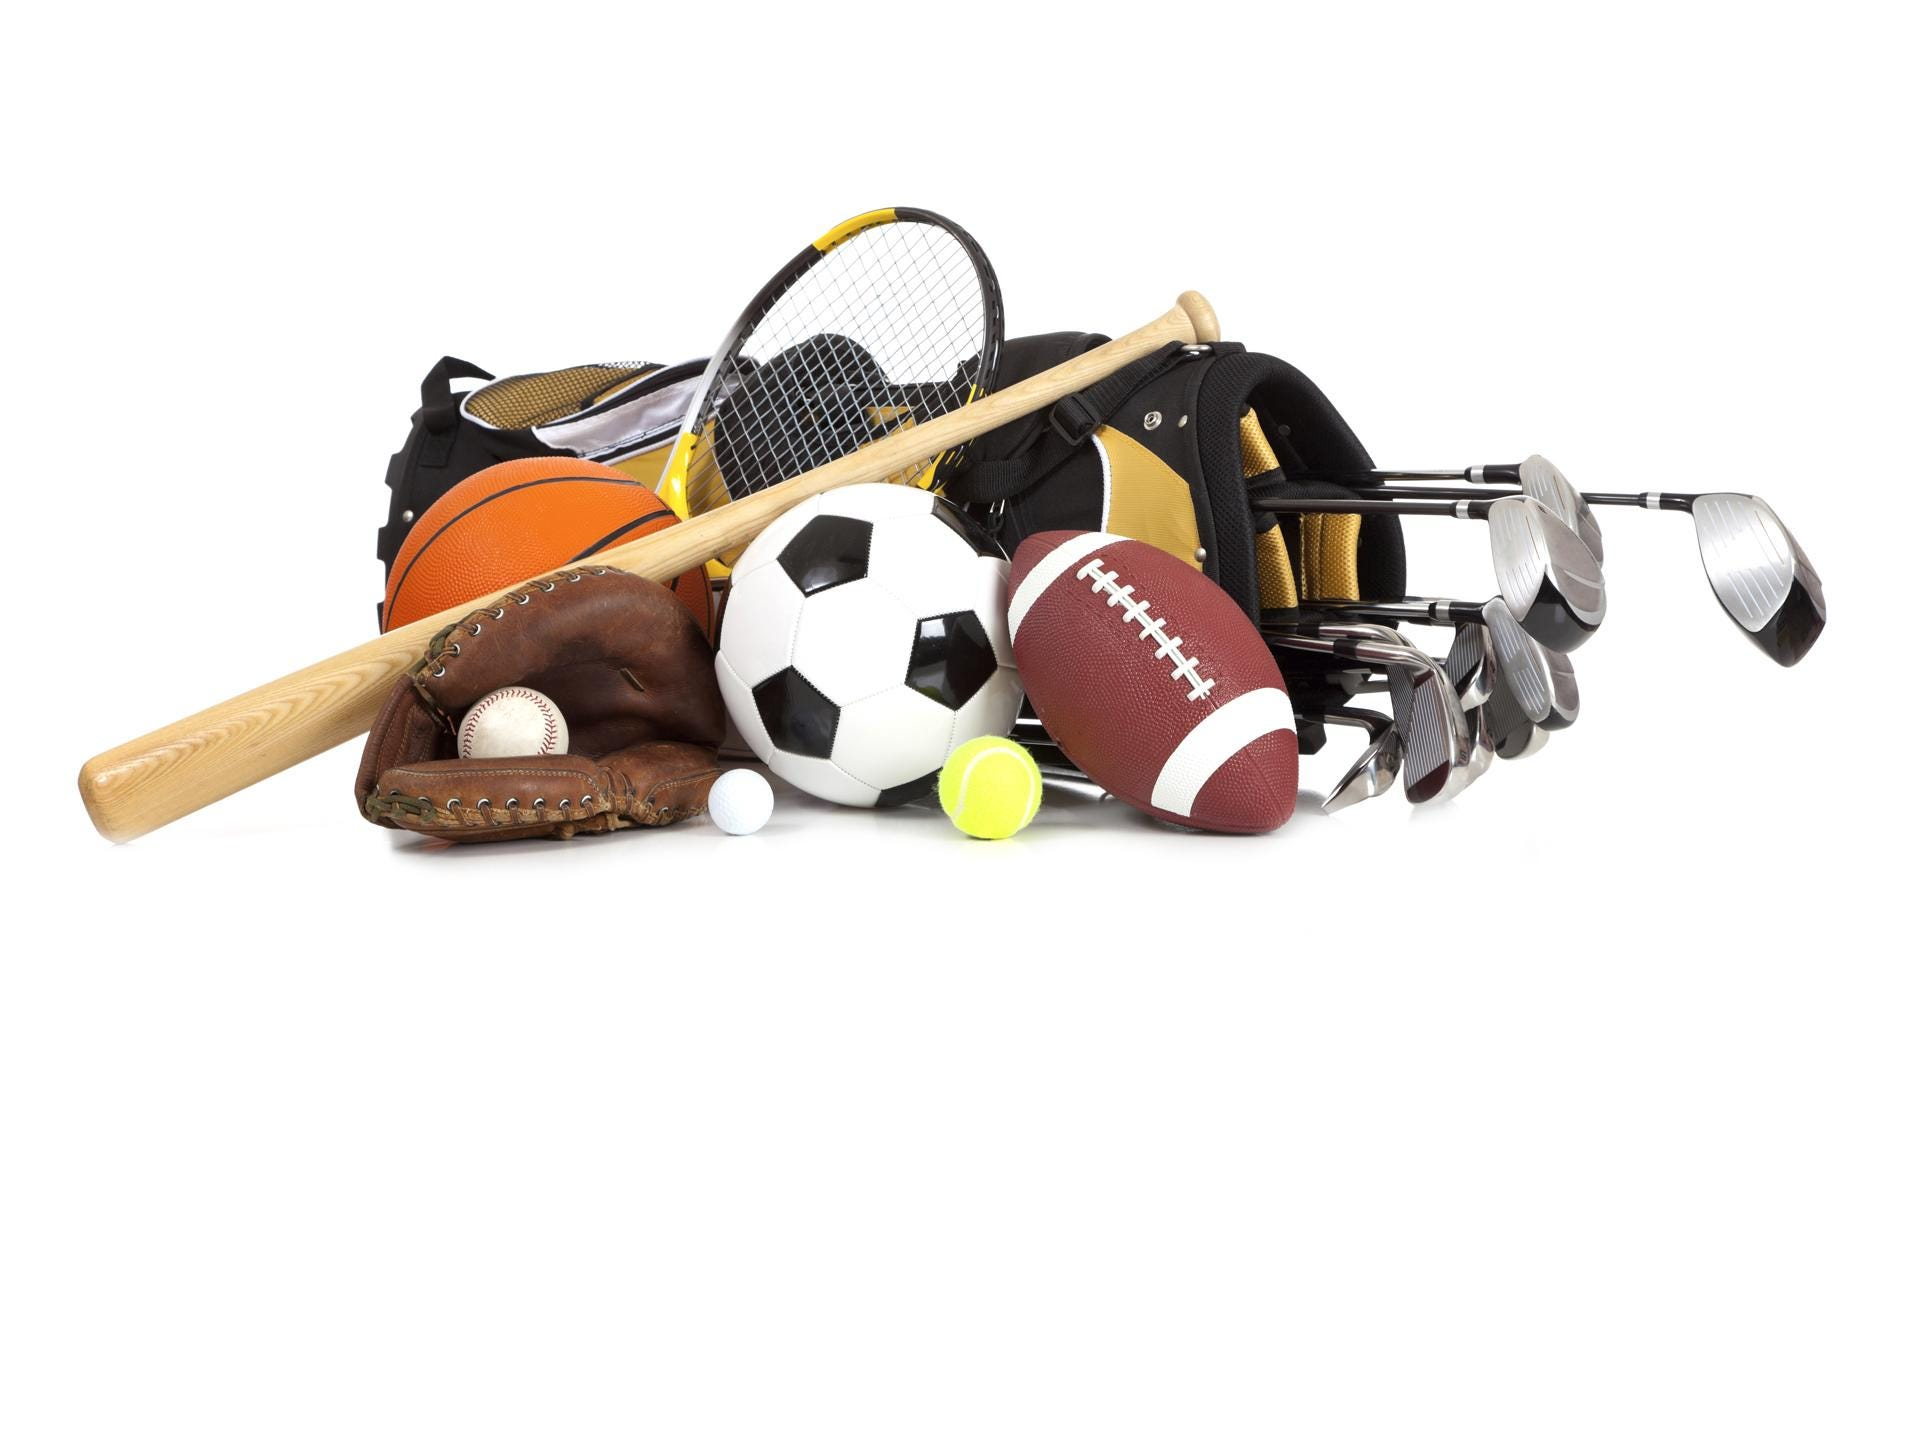 Assorted sports equipment on a white background